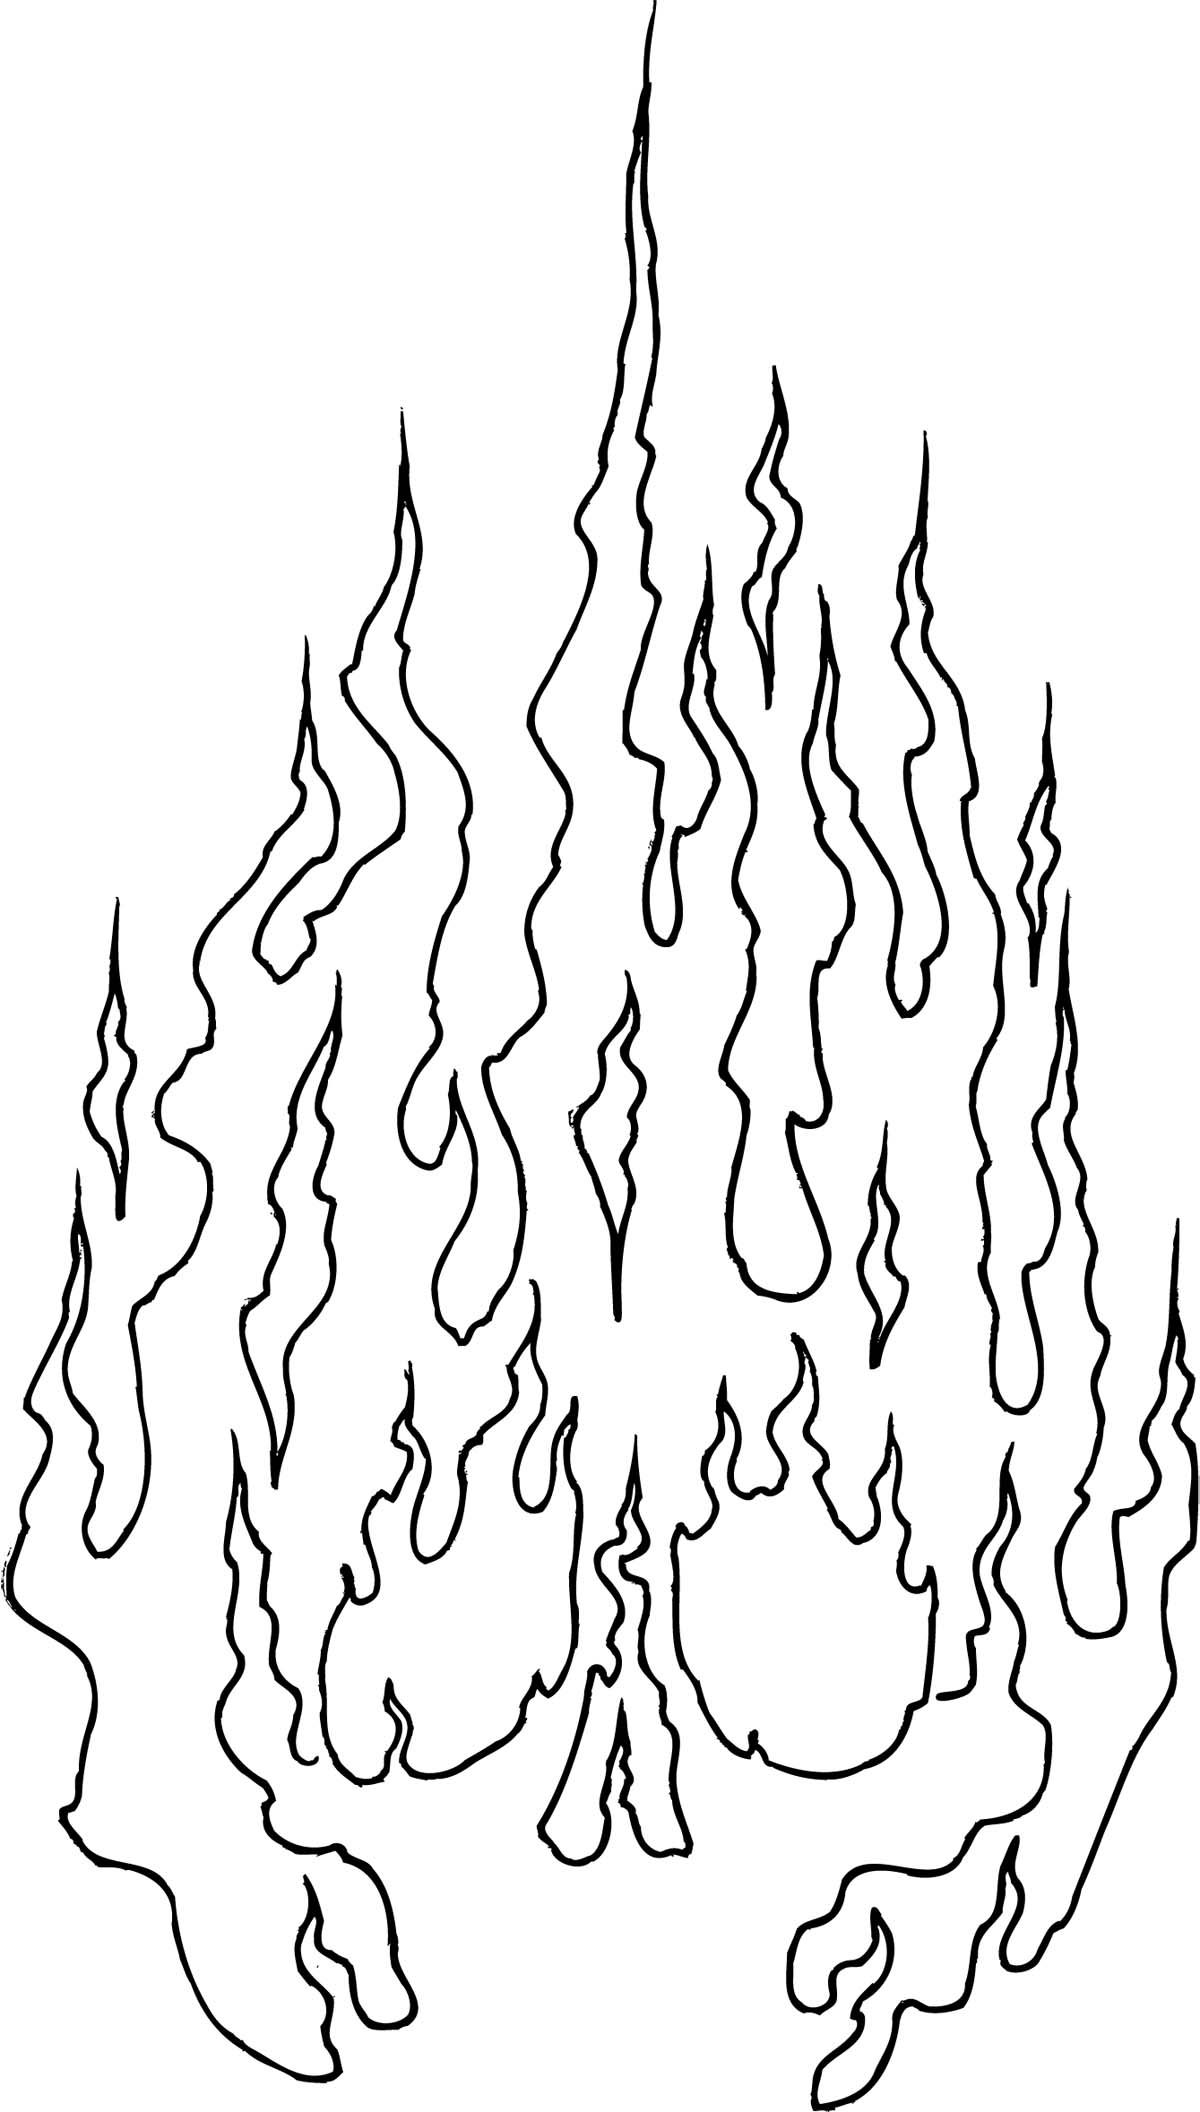 Flames Clipart Line Drawing Flames Line Drawing